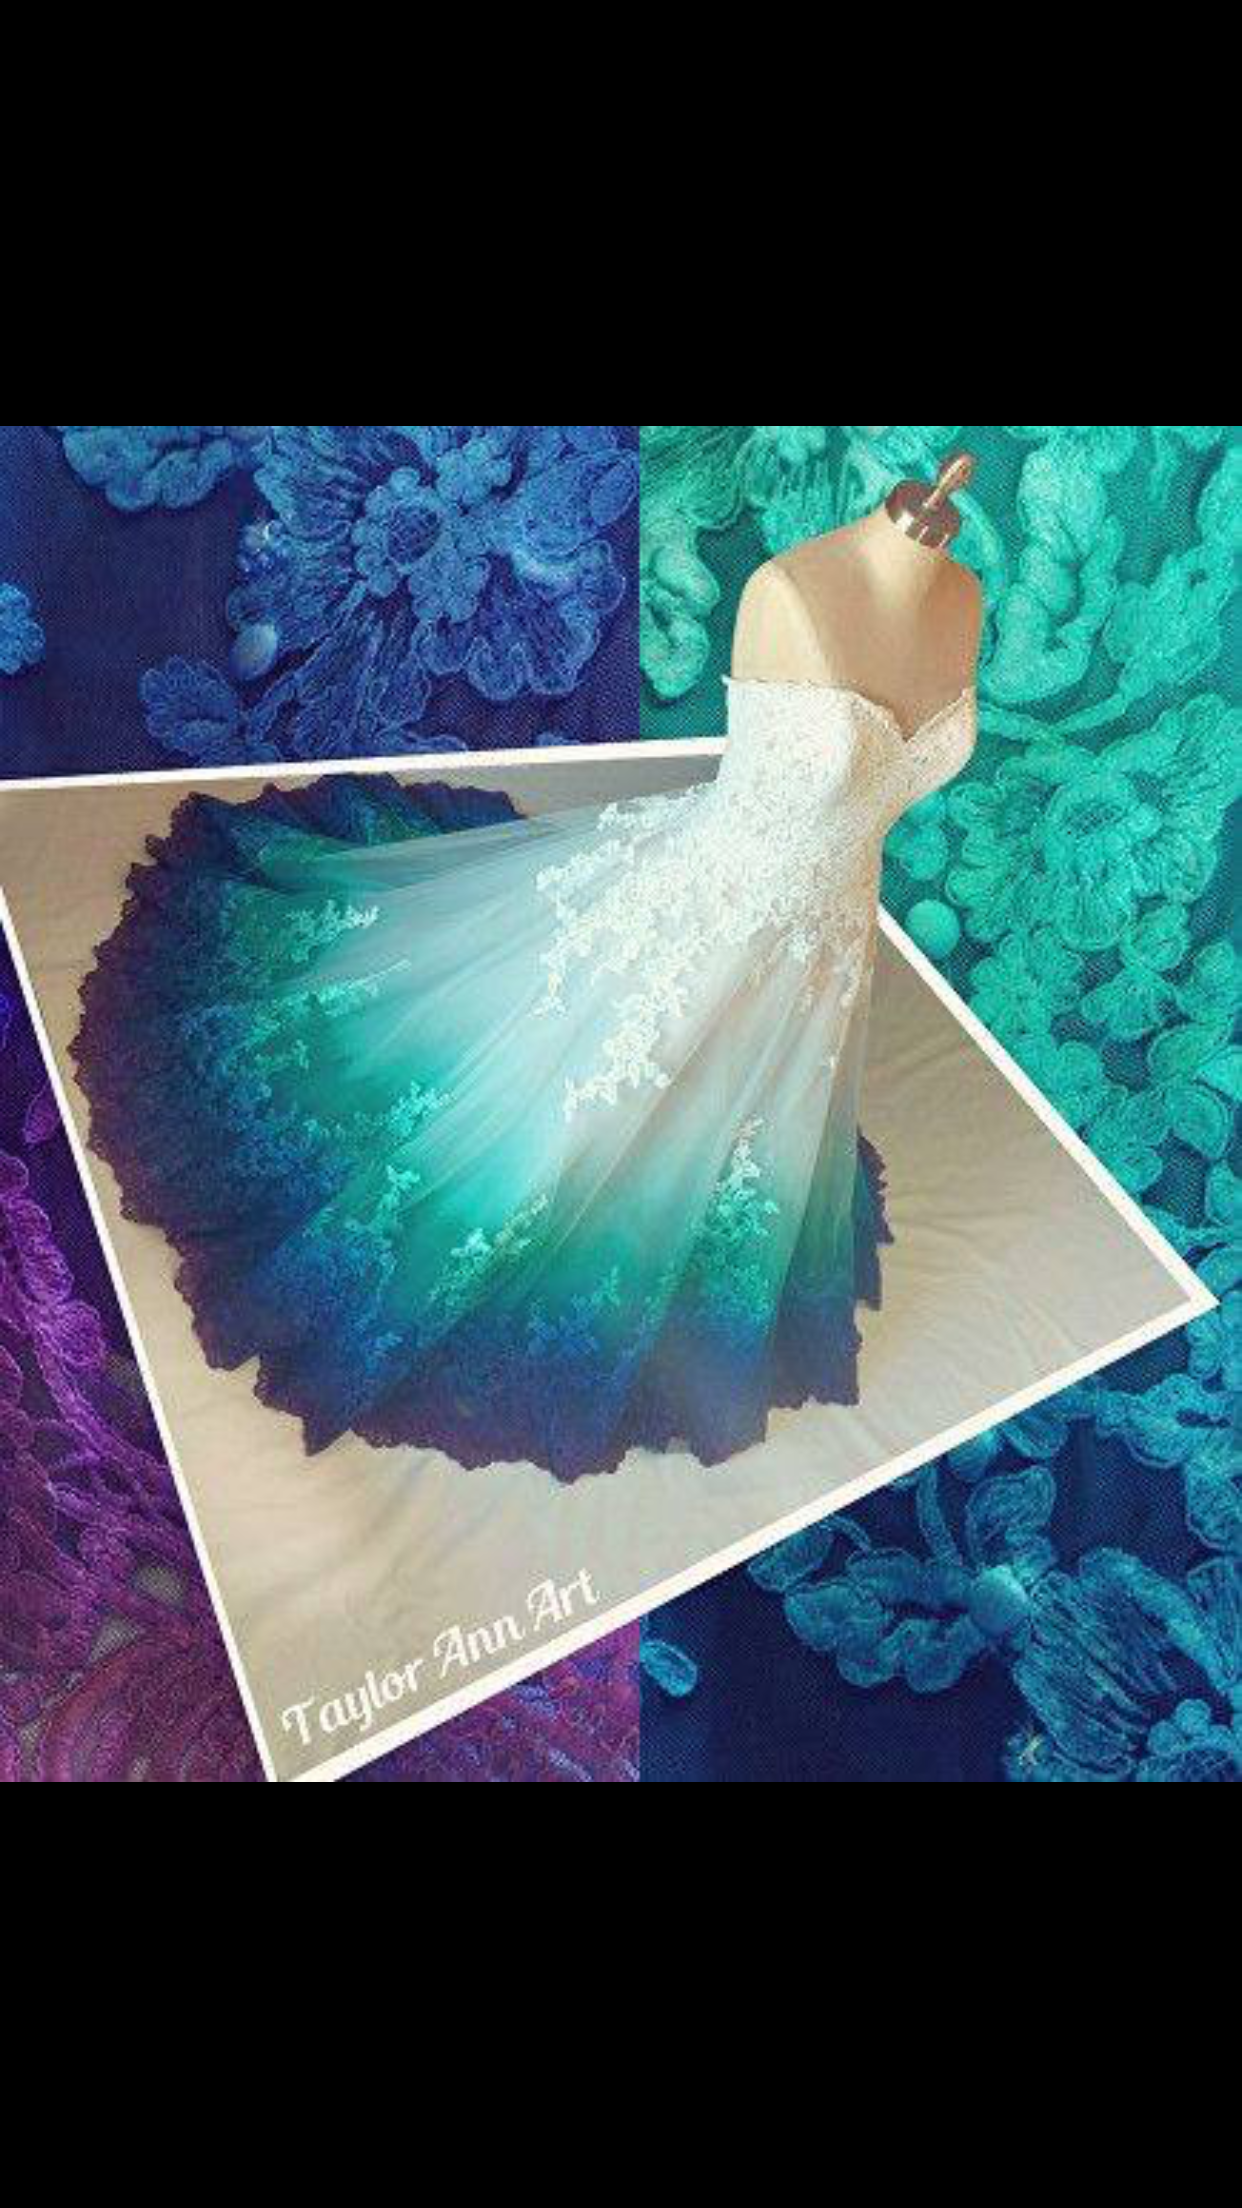 best images about kjole til line on pinterest fairy dress